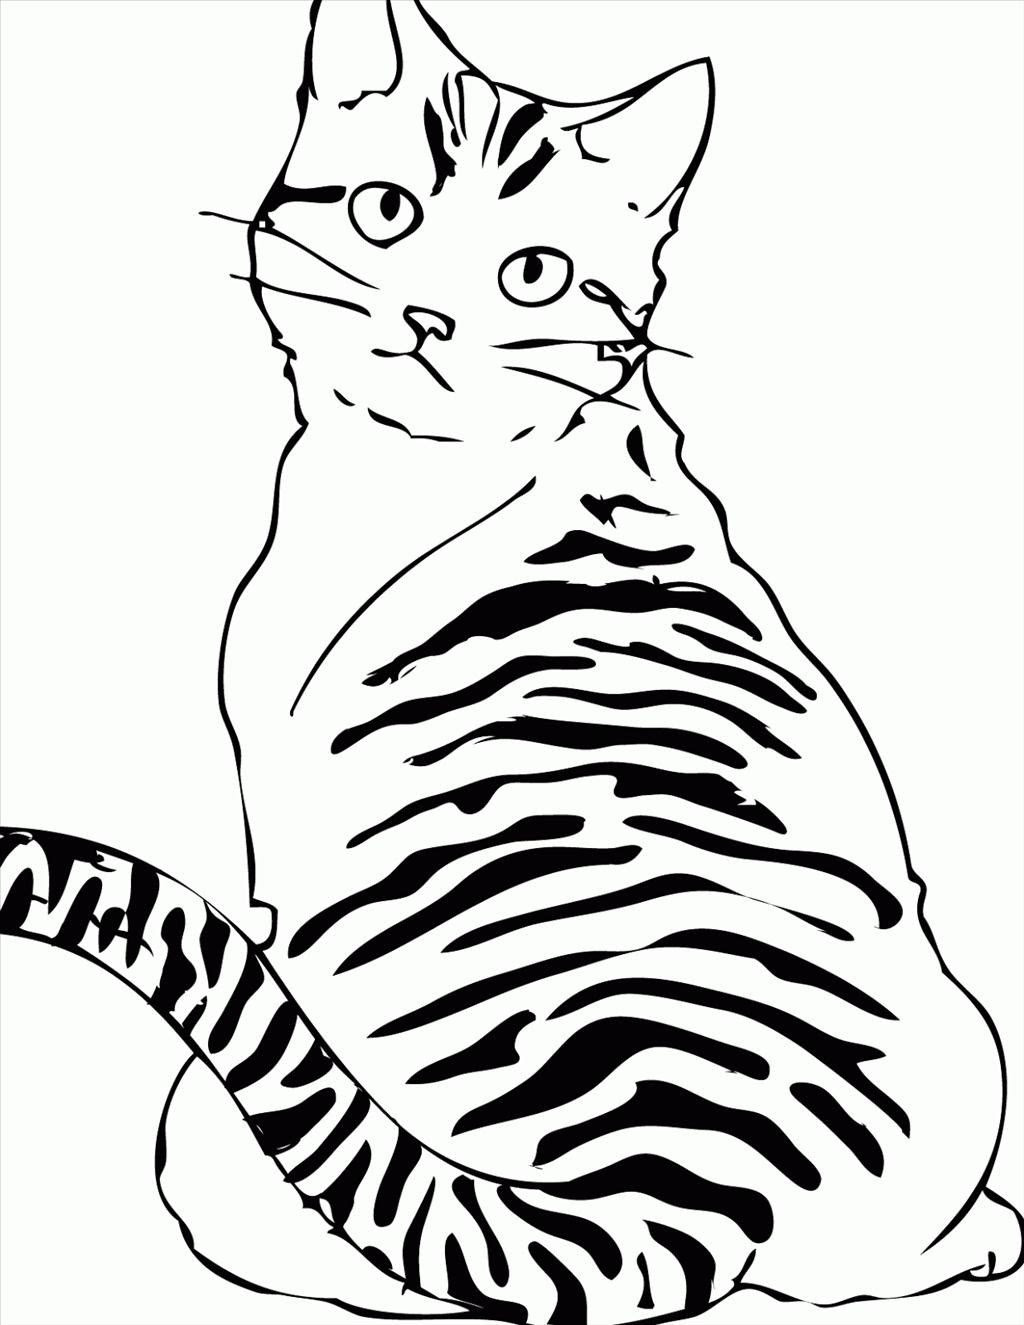 Tabby Cat Coloring Pages at GetColorings.com | Free ...